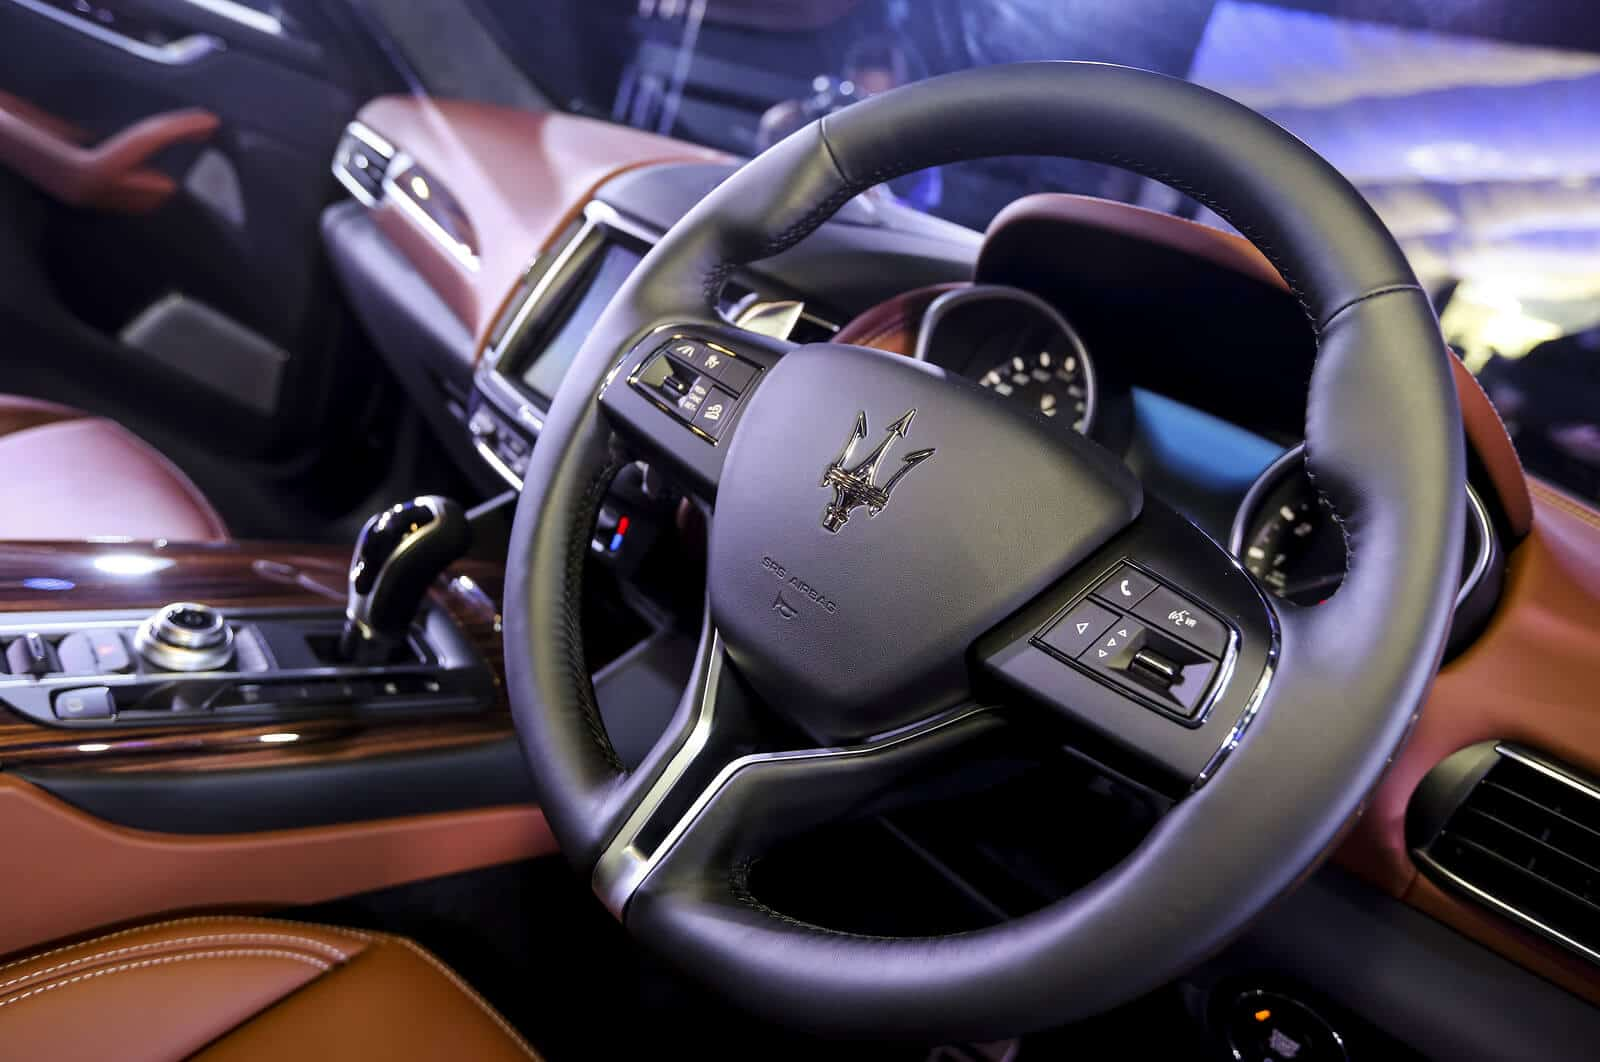 Interior of Maserati car